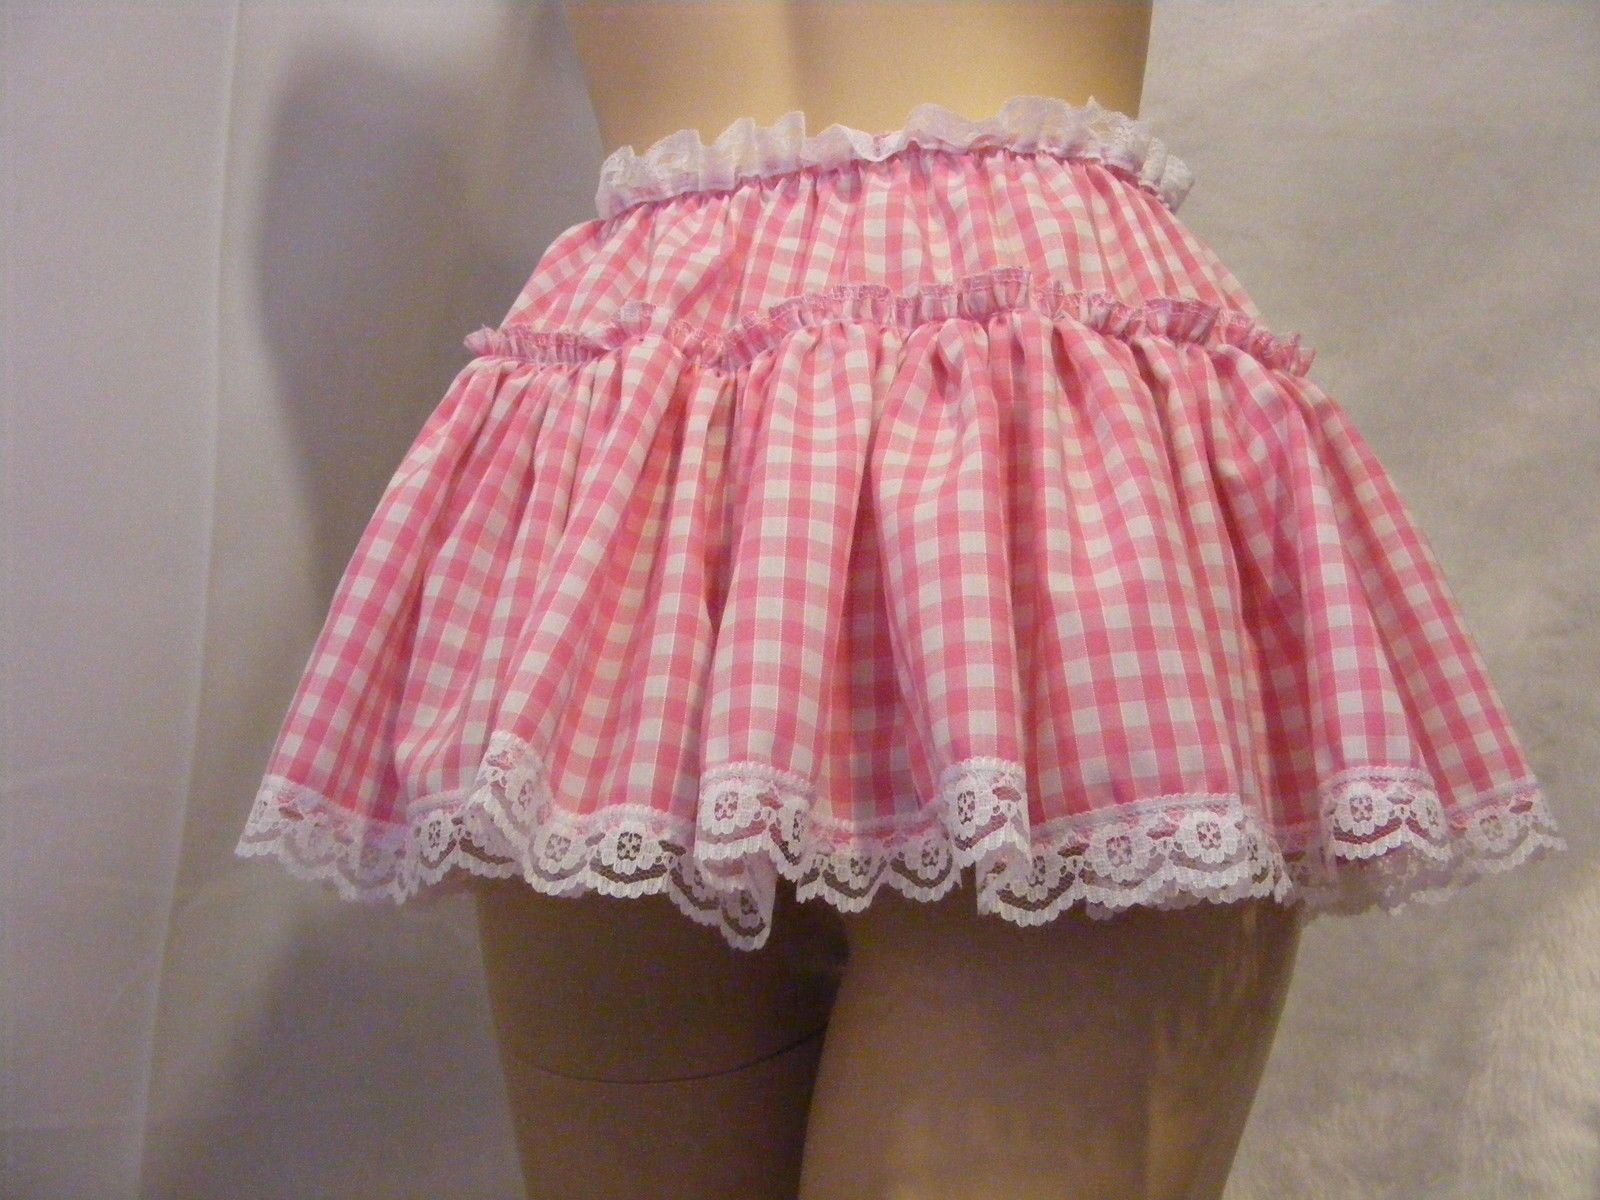 """SISSY ADULT BABY FANCYDRESS PINK GINGHAM MICRO MINI SKIRT 11/""""LONG ALL SIZES"""